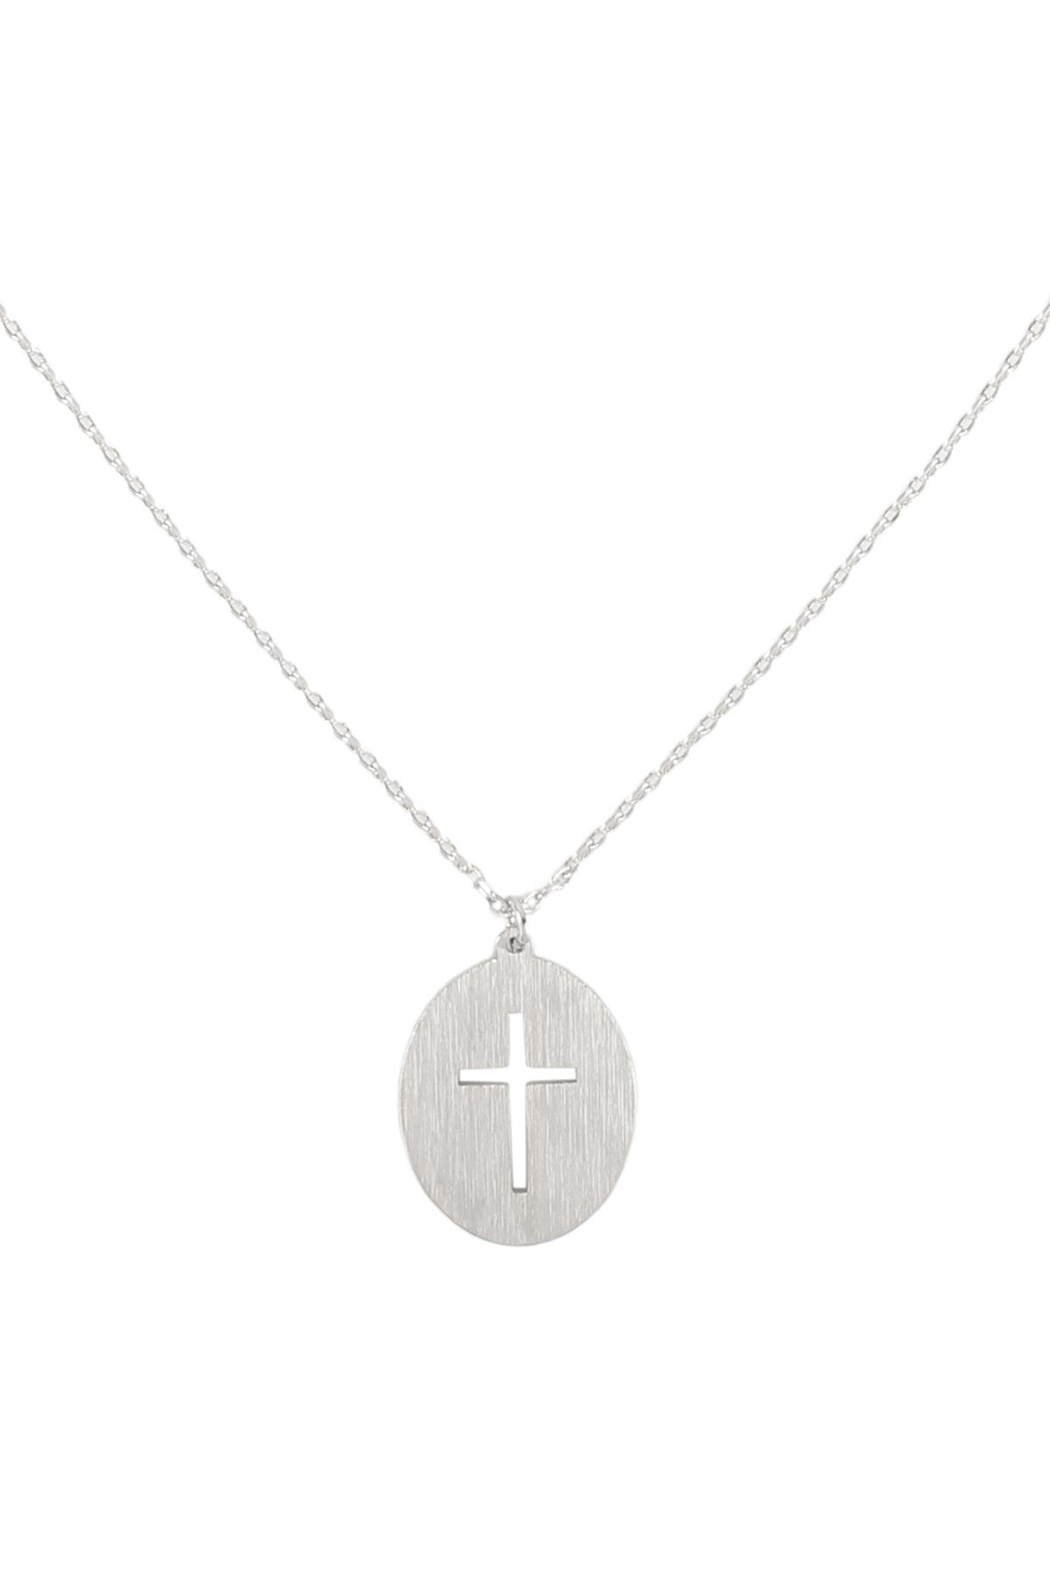 Riah Fashion Cross-Cutout-Oval-Brass-Pendant-Necklace - Front Cropped Image